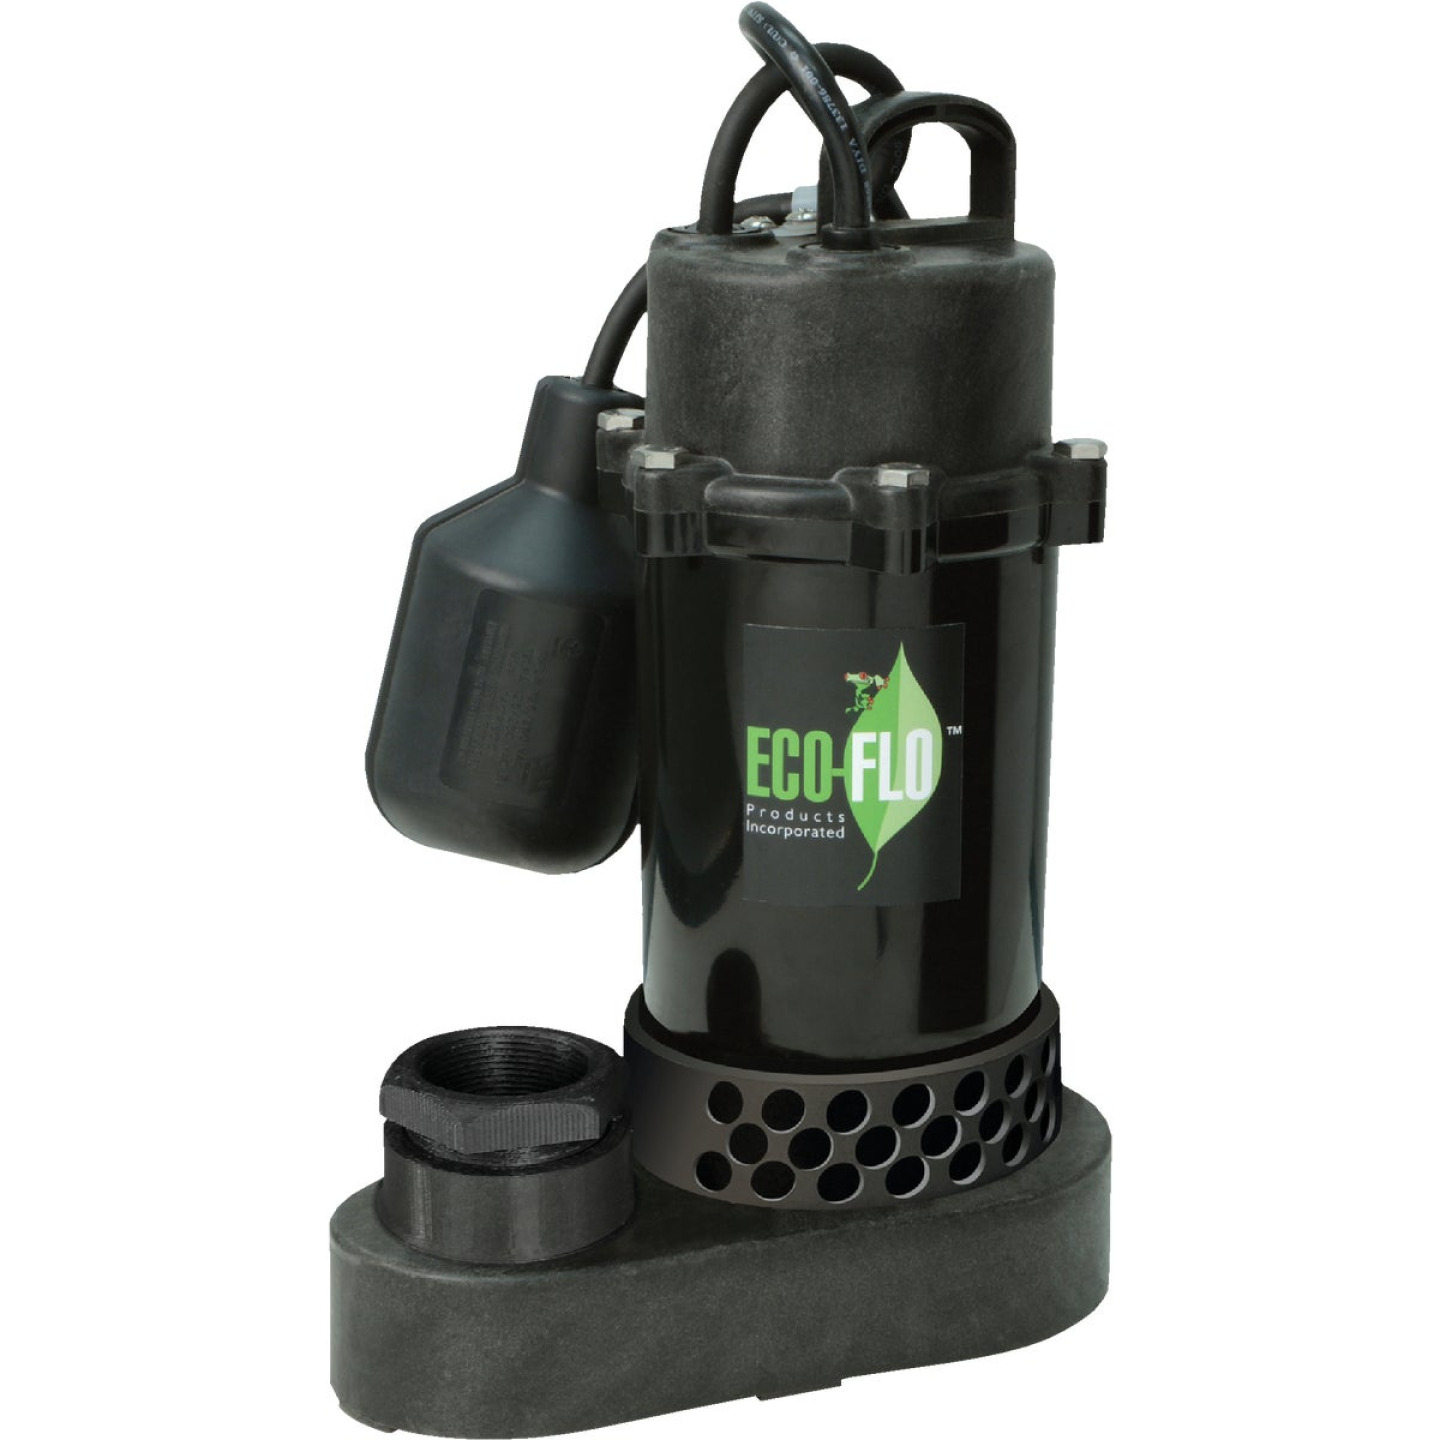 ECO-FLO 1/3 HP Wide Angle Switch Submersible Thermoplastic Sump Pump Image 1